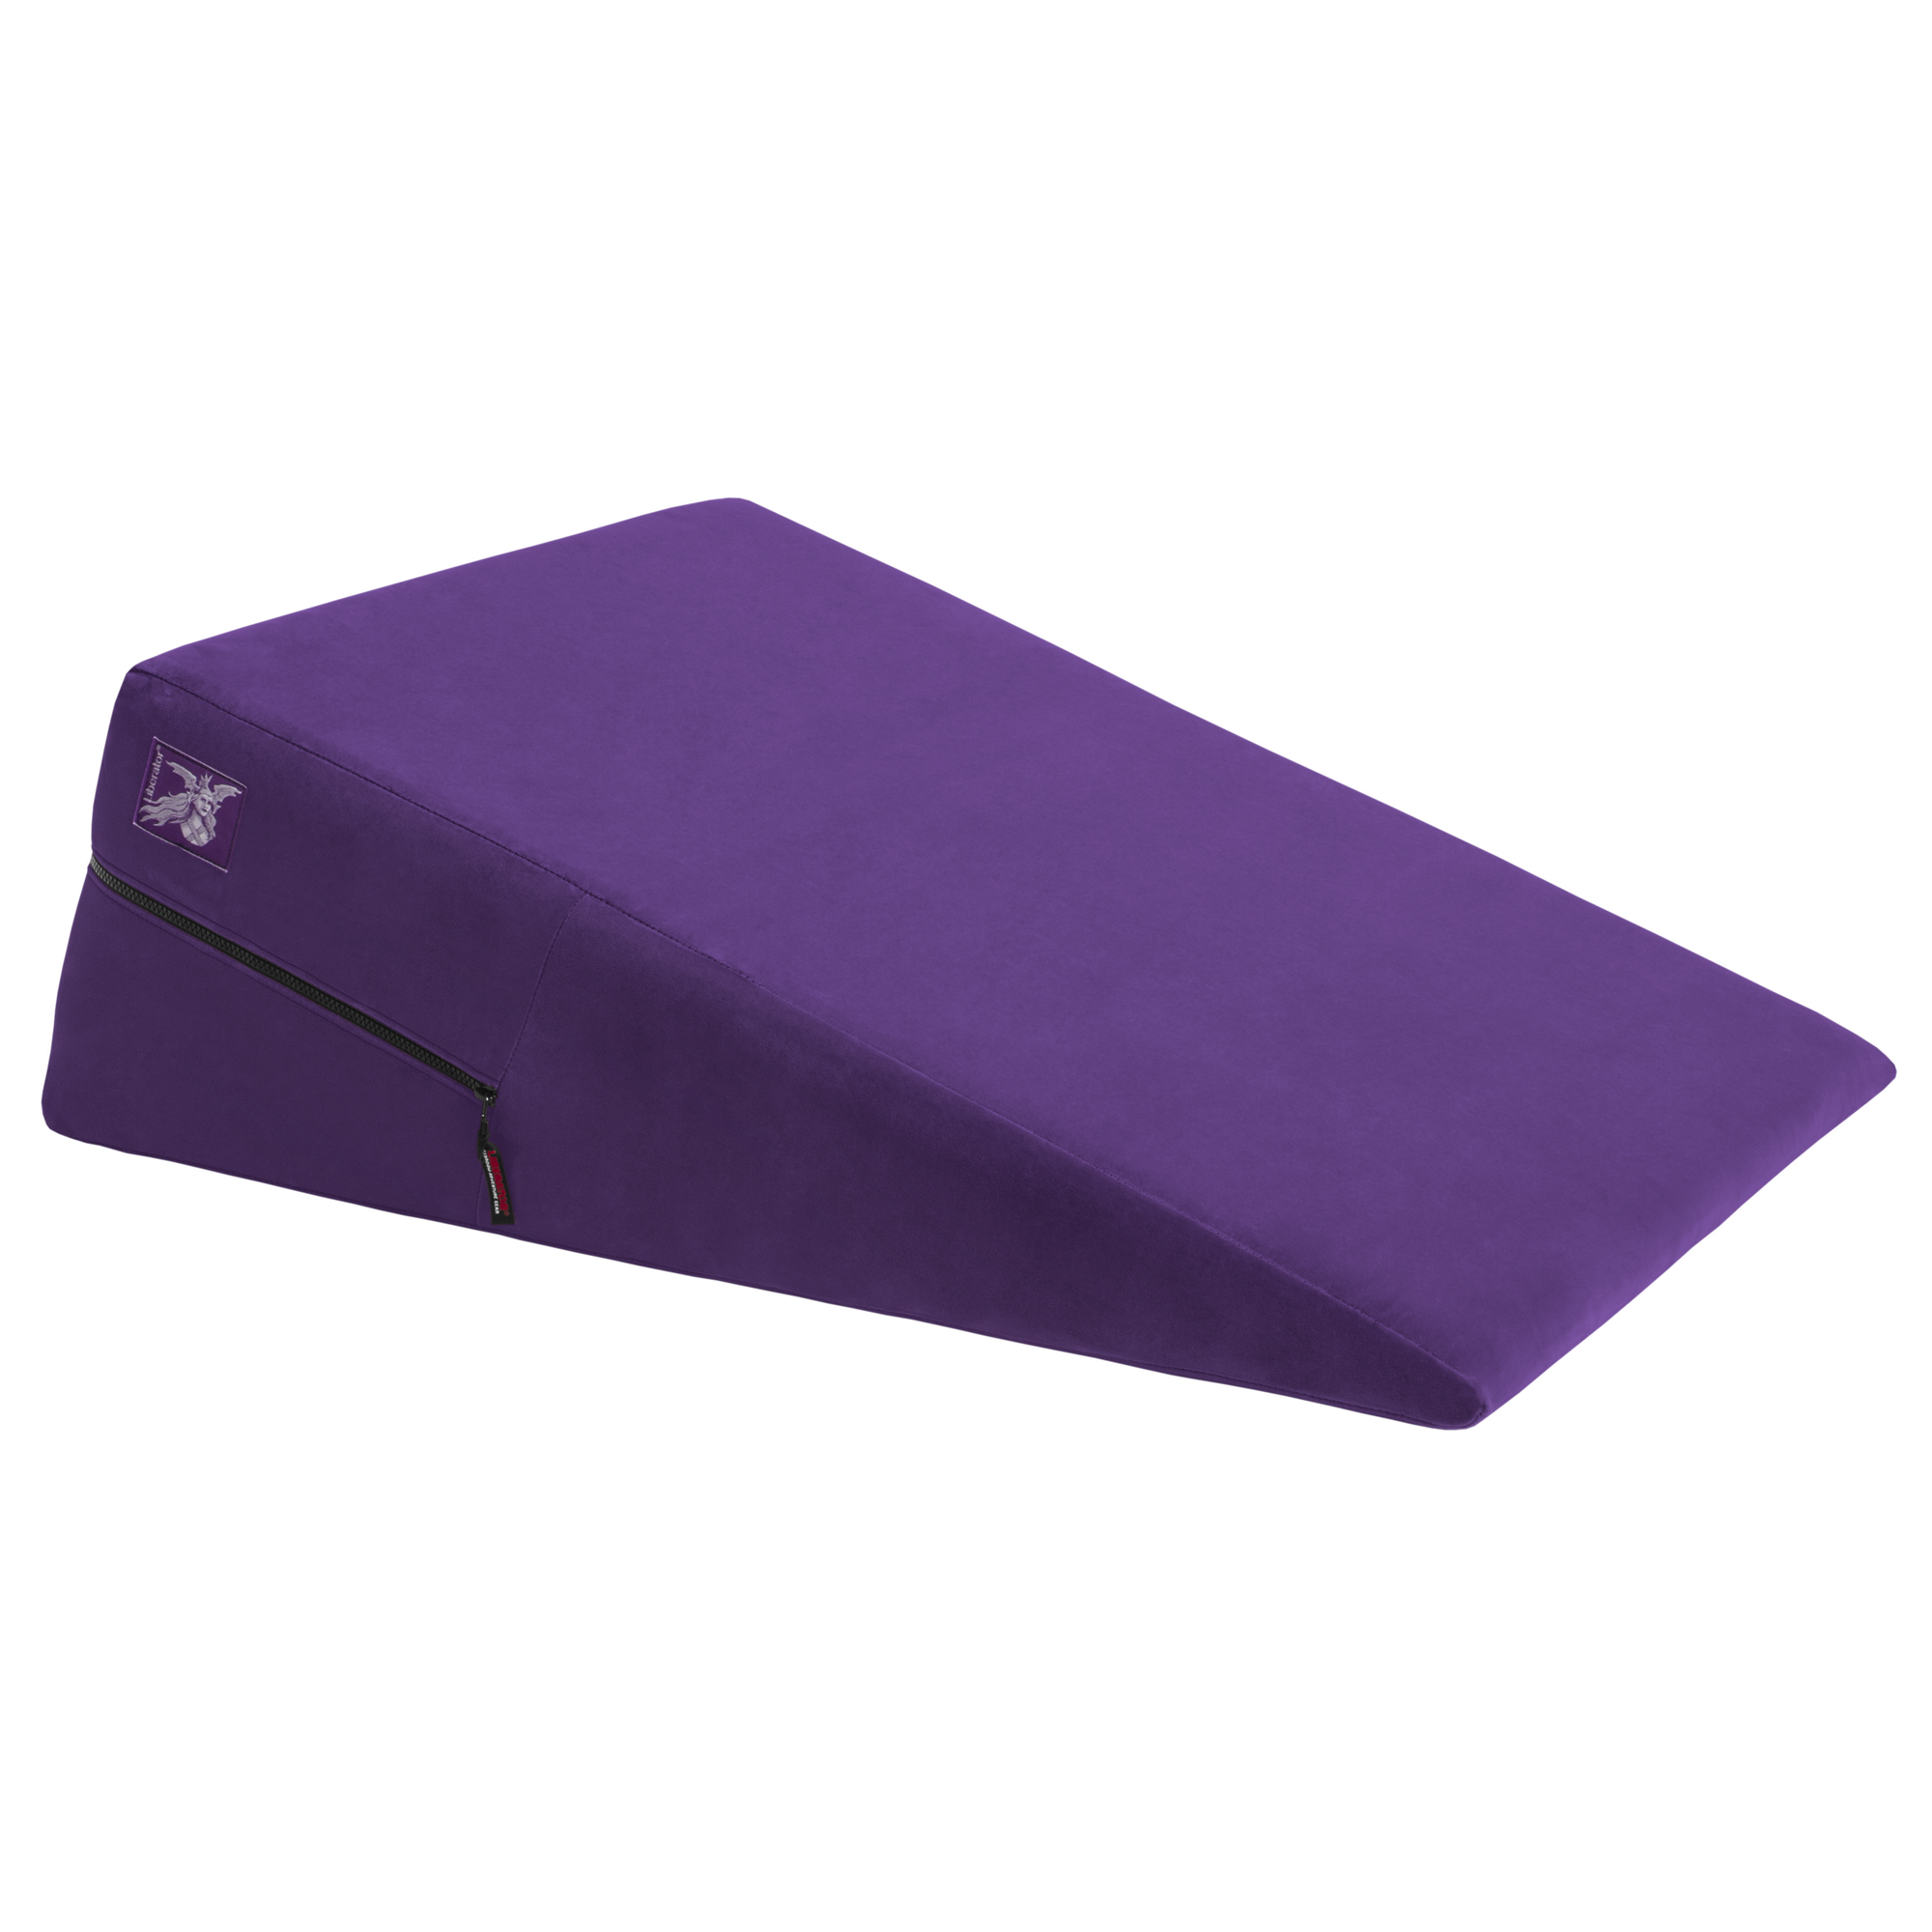 ramp_purple1